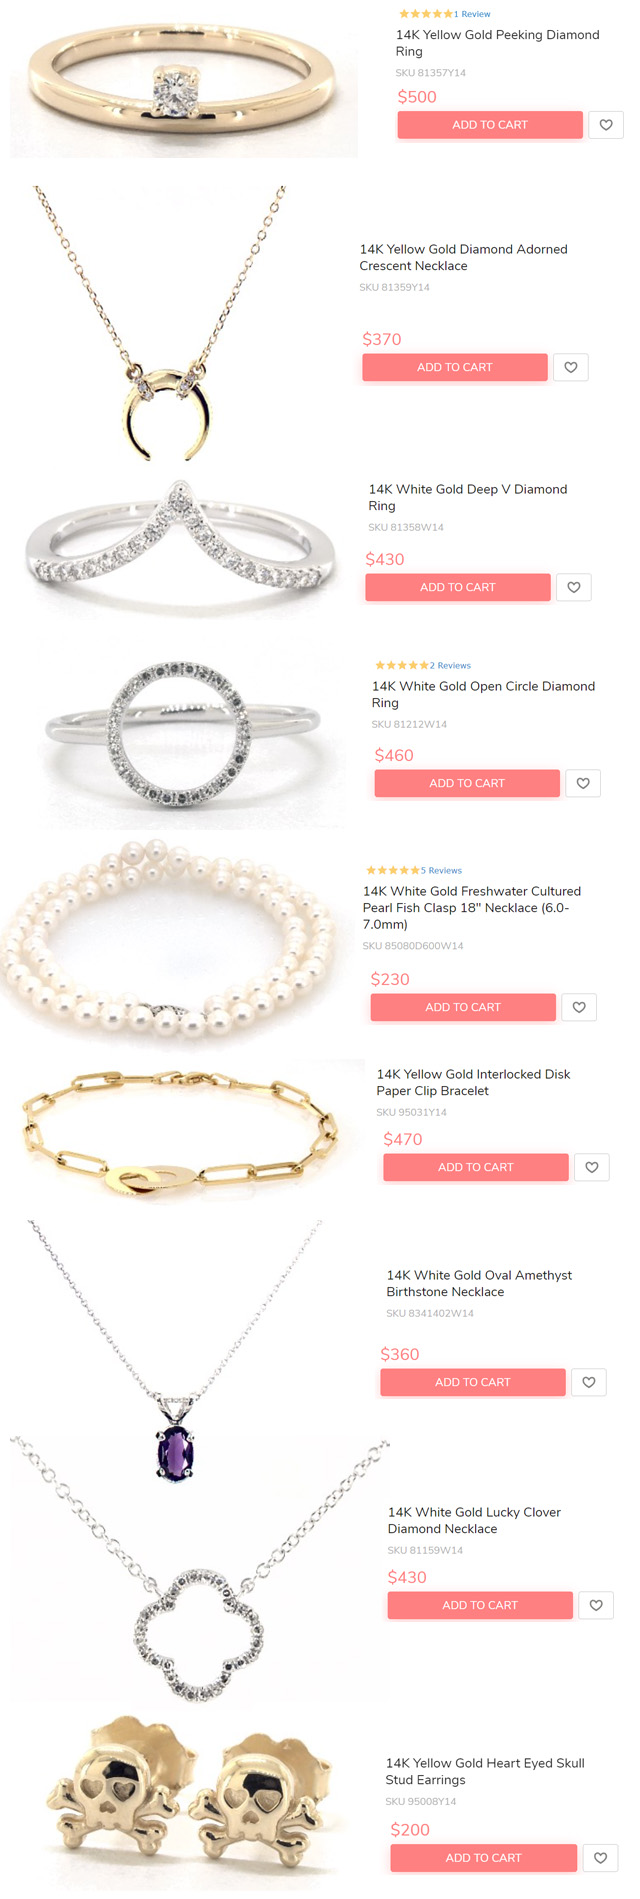 Jewelry Gifts Under 500 Dollars